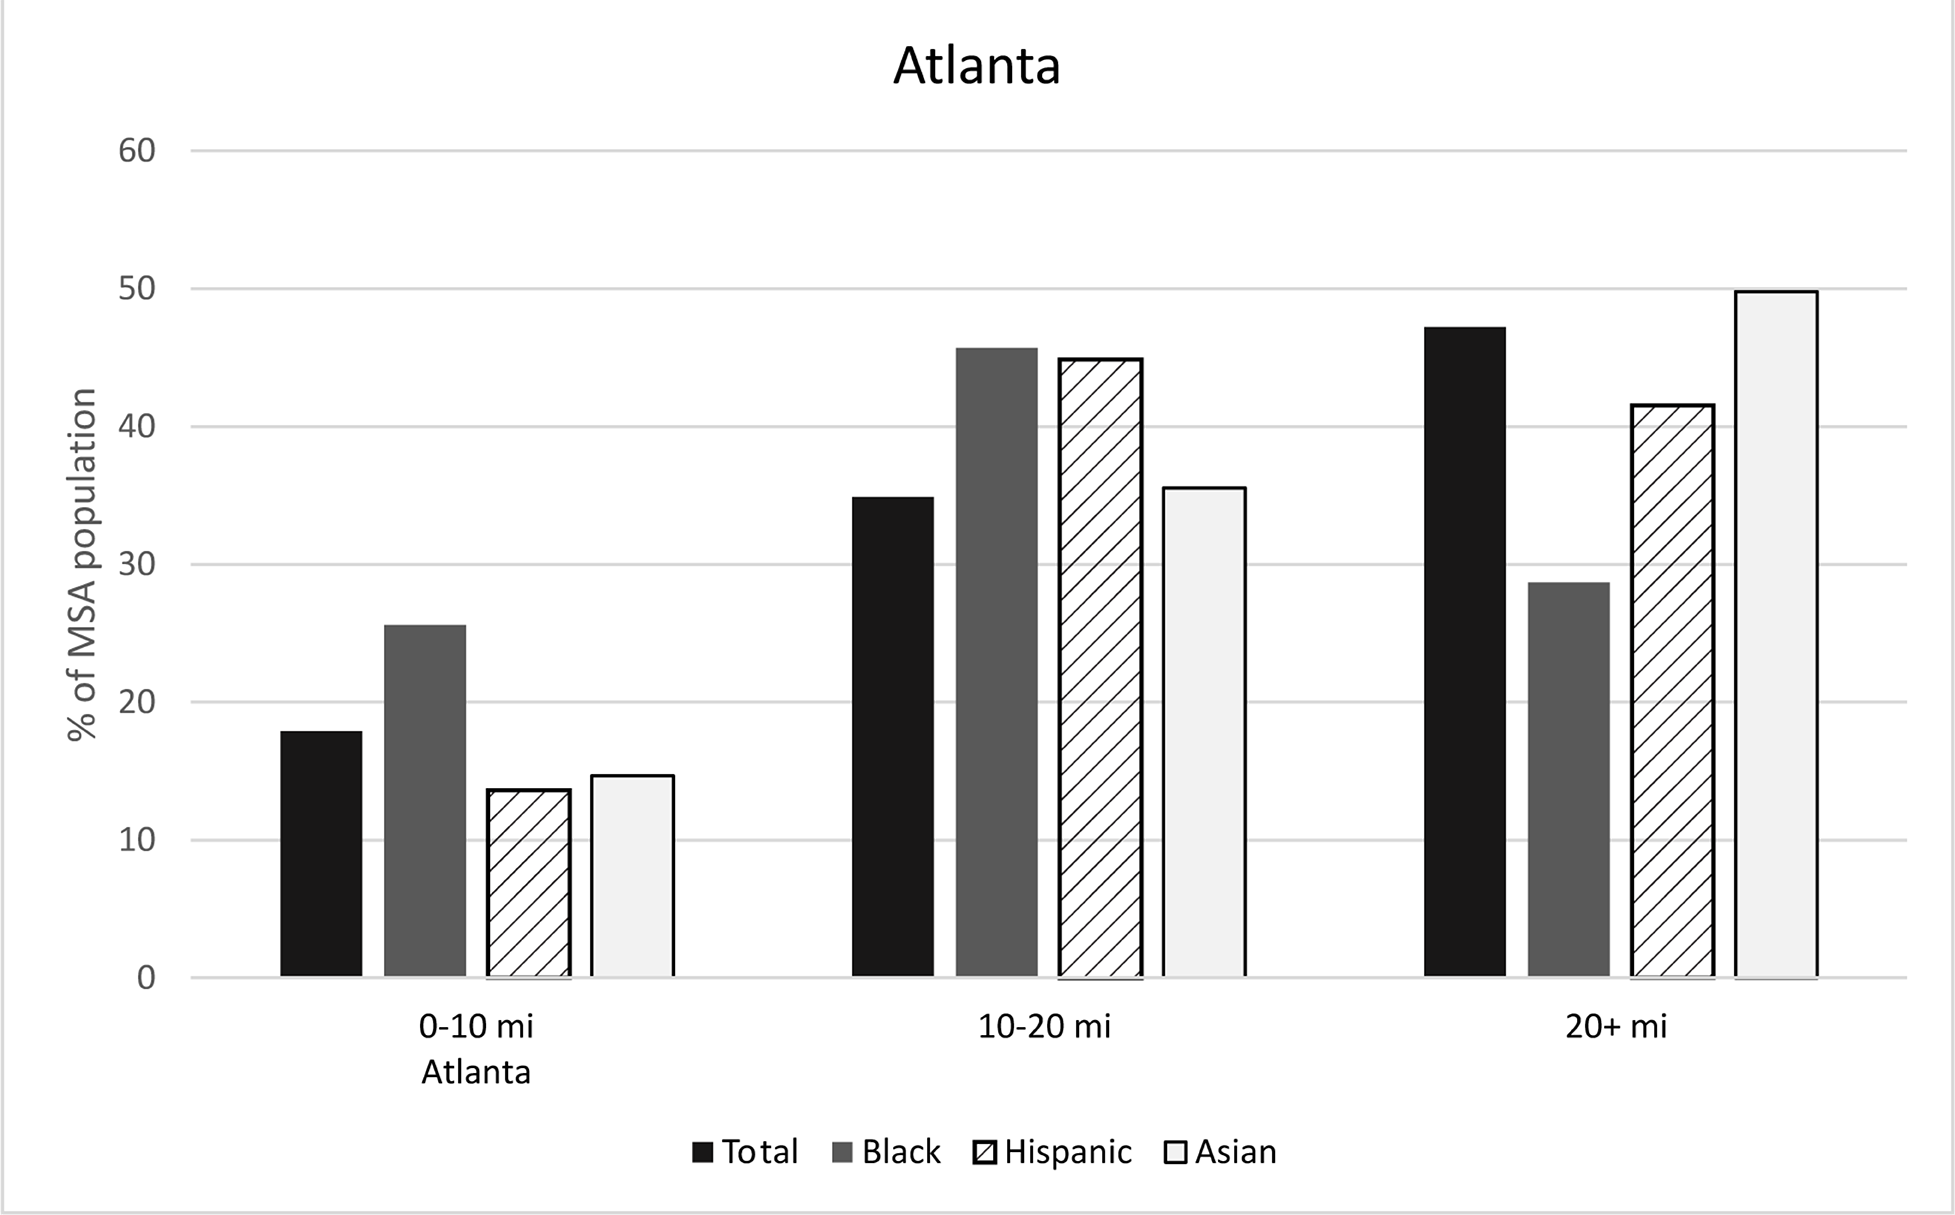 Figure 5: Racial/ethnic concentration by distance to CBD, Atlanta. See accessible link for data.